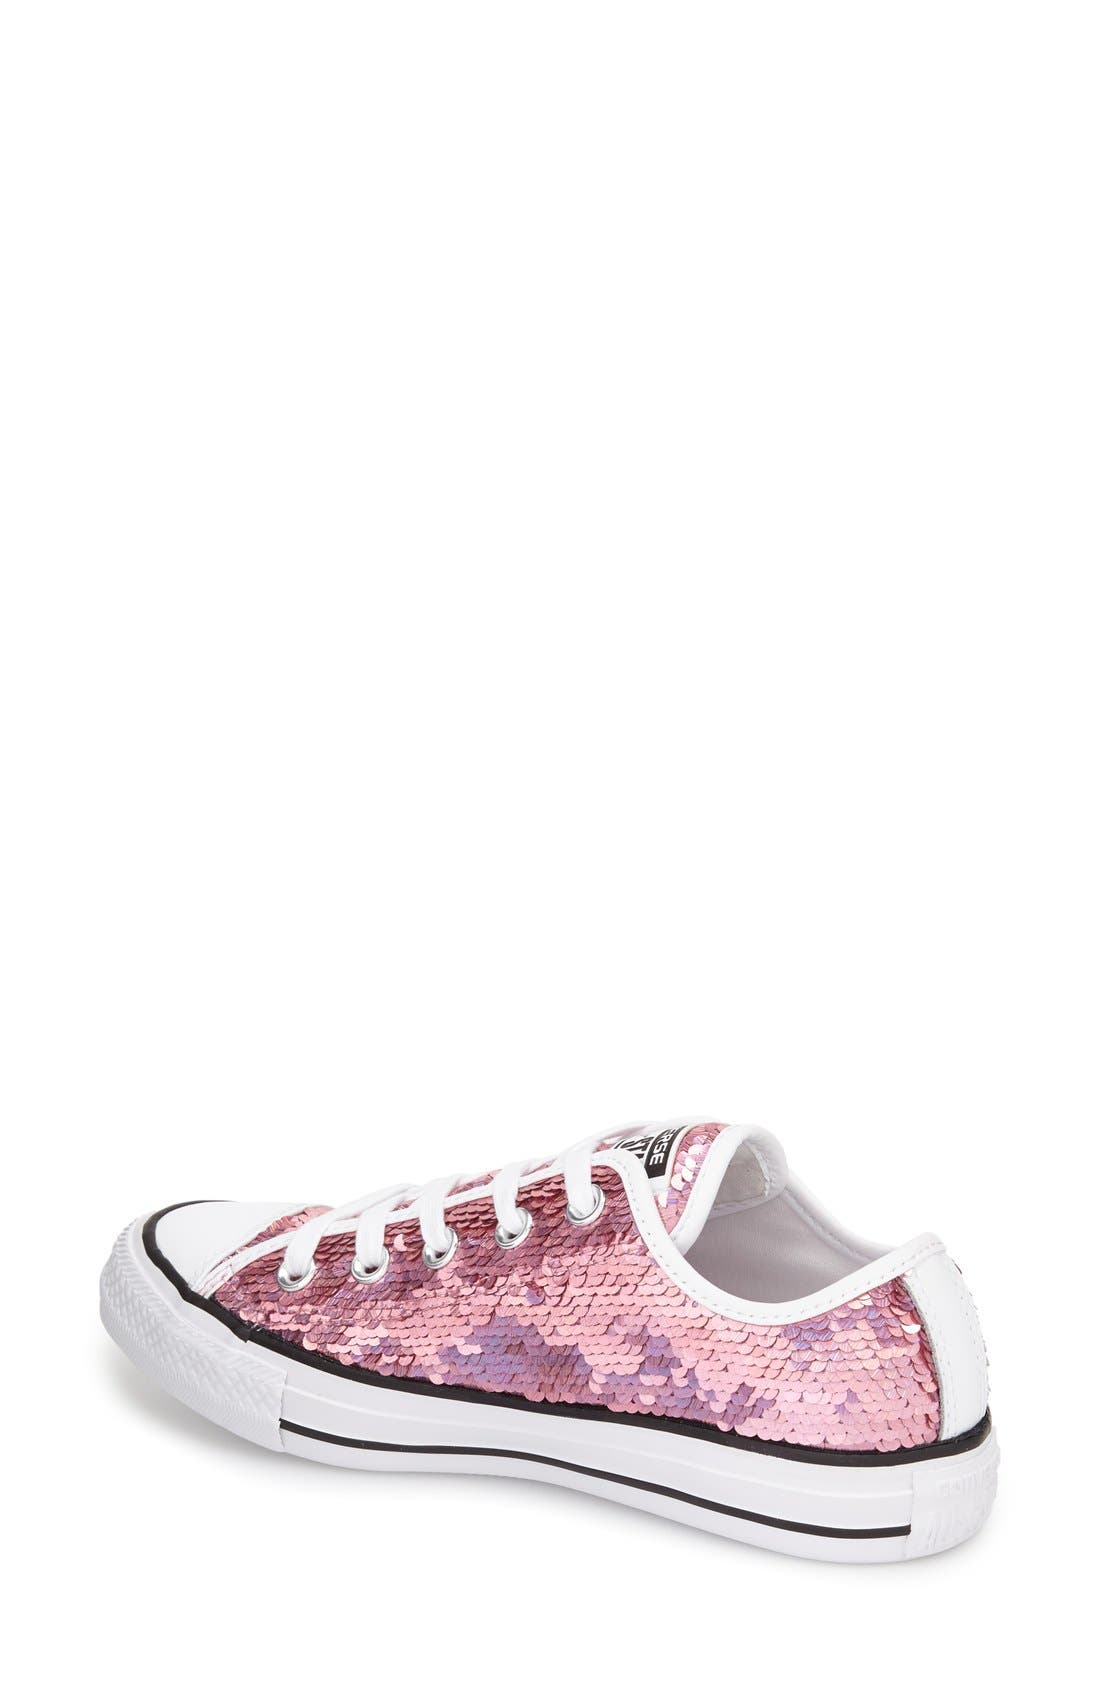 Alternate Image 2  - Converse Chuck Taylor® All Star® 'Holiday Party' Low Top Sequined Sneaker (Women)